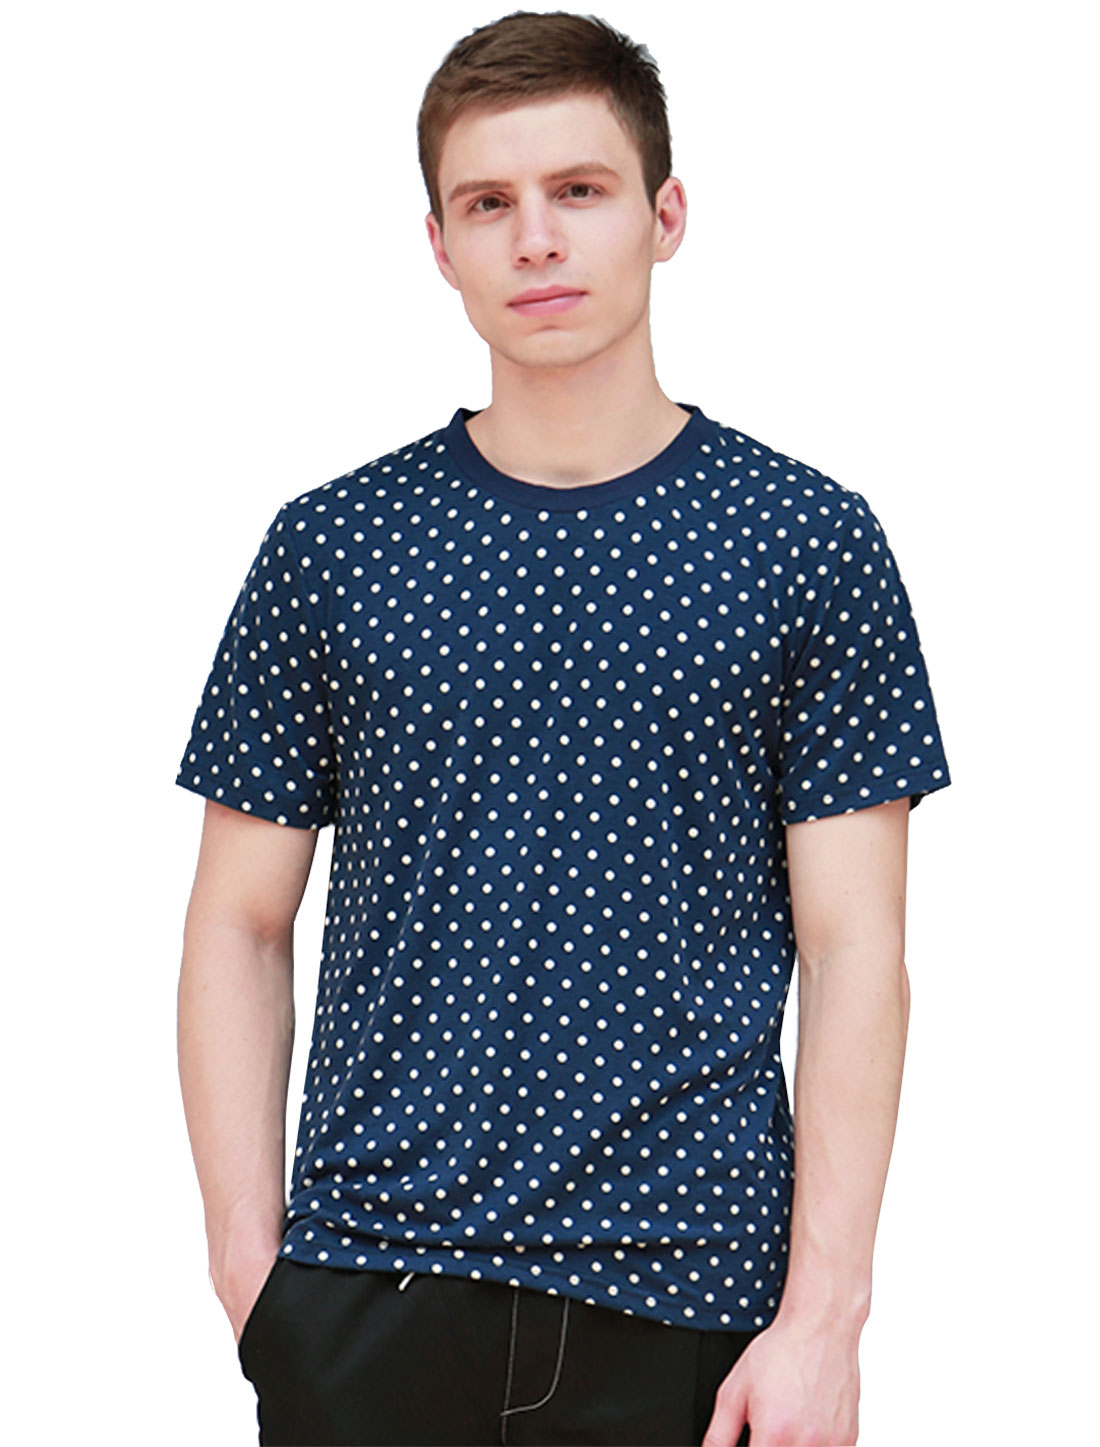 Men Crew Neck Short Sleeves Dotted T-Shirt Blue M